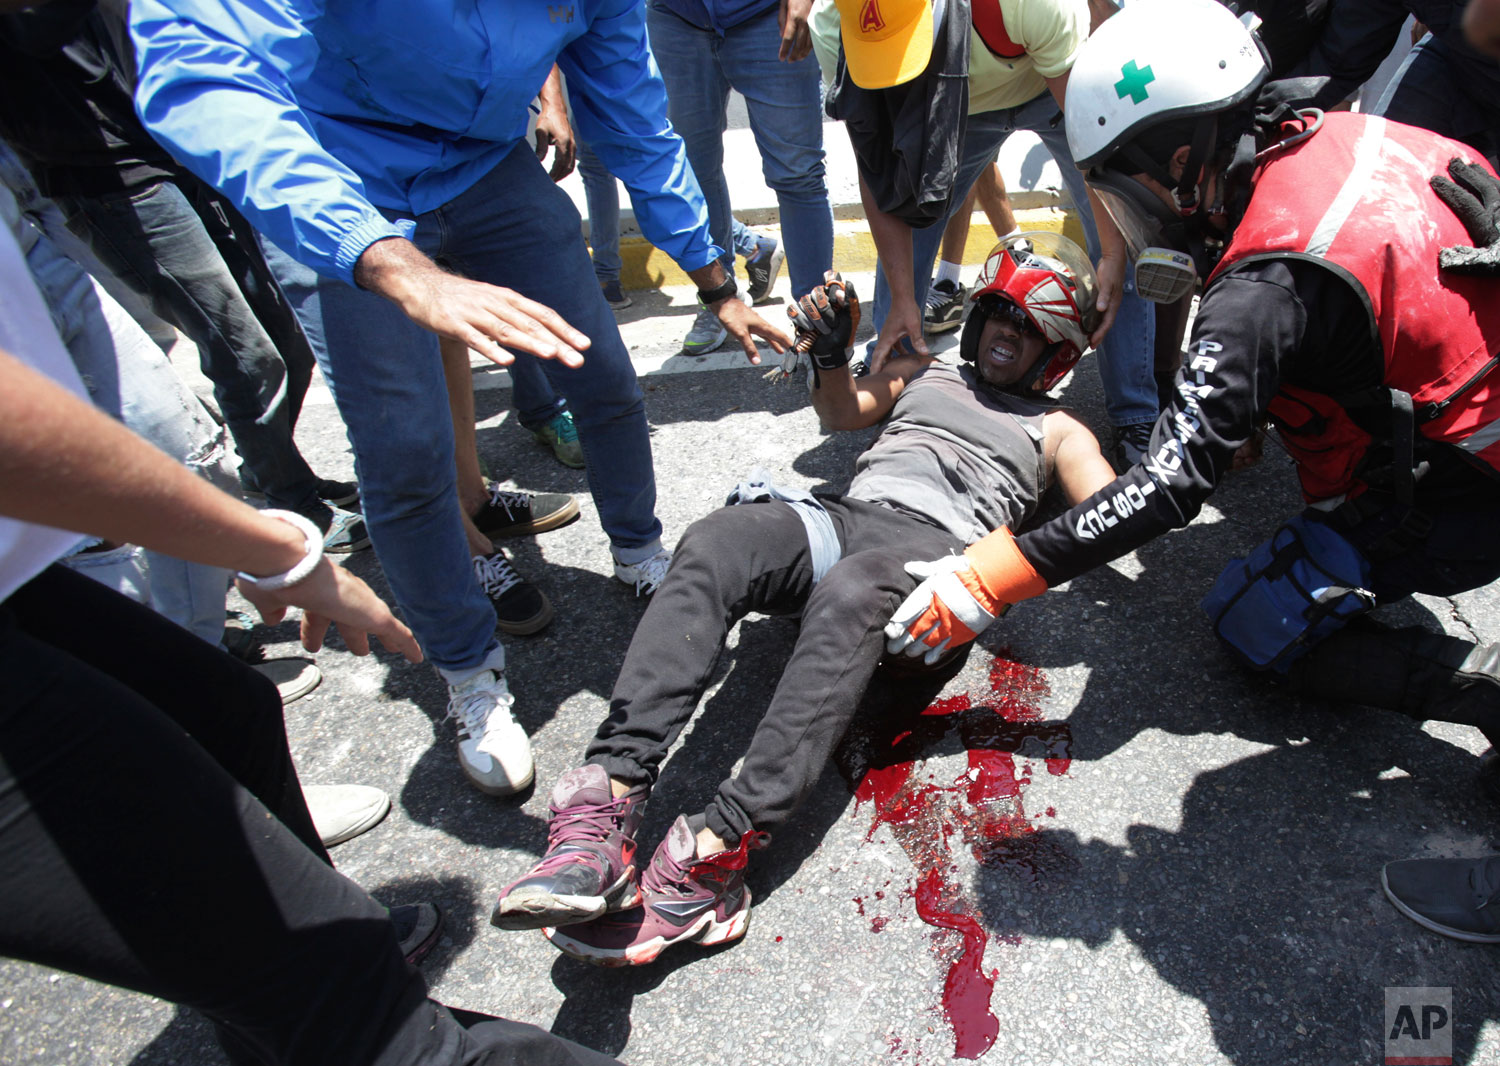 A man who was run over by a National Guard vehicle is aided by fellow anti-government protesters outside La Carlota airbase during an attempted military uprising in Caracas, Venezuela, Tuesday, April 30, 2019. (AP Photo/Boris Vergara)